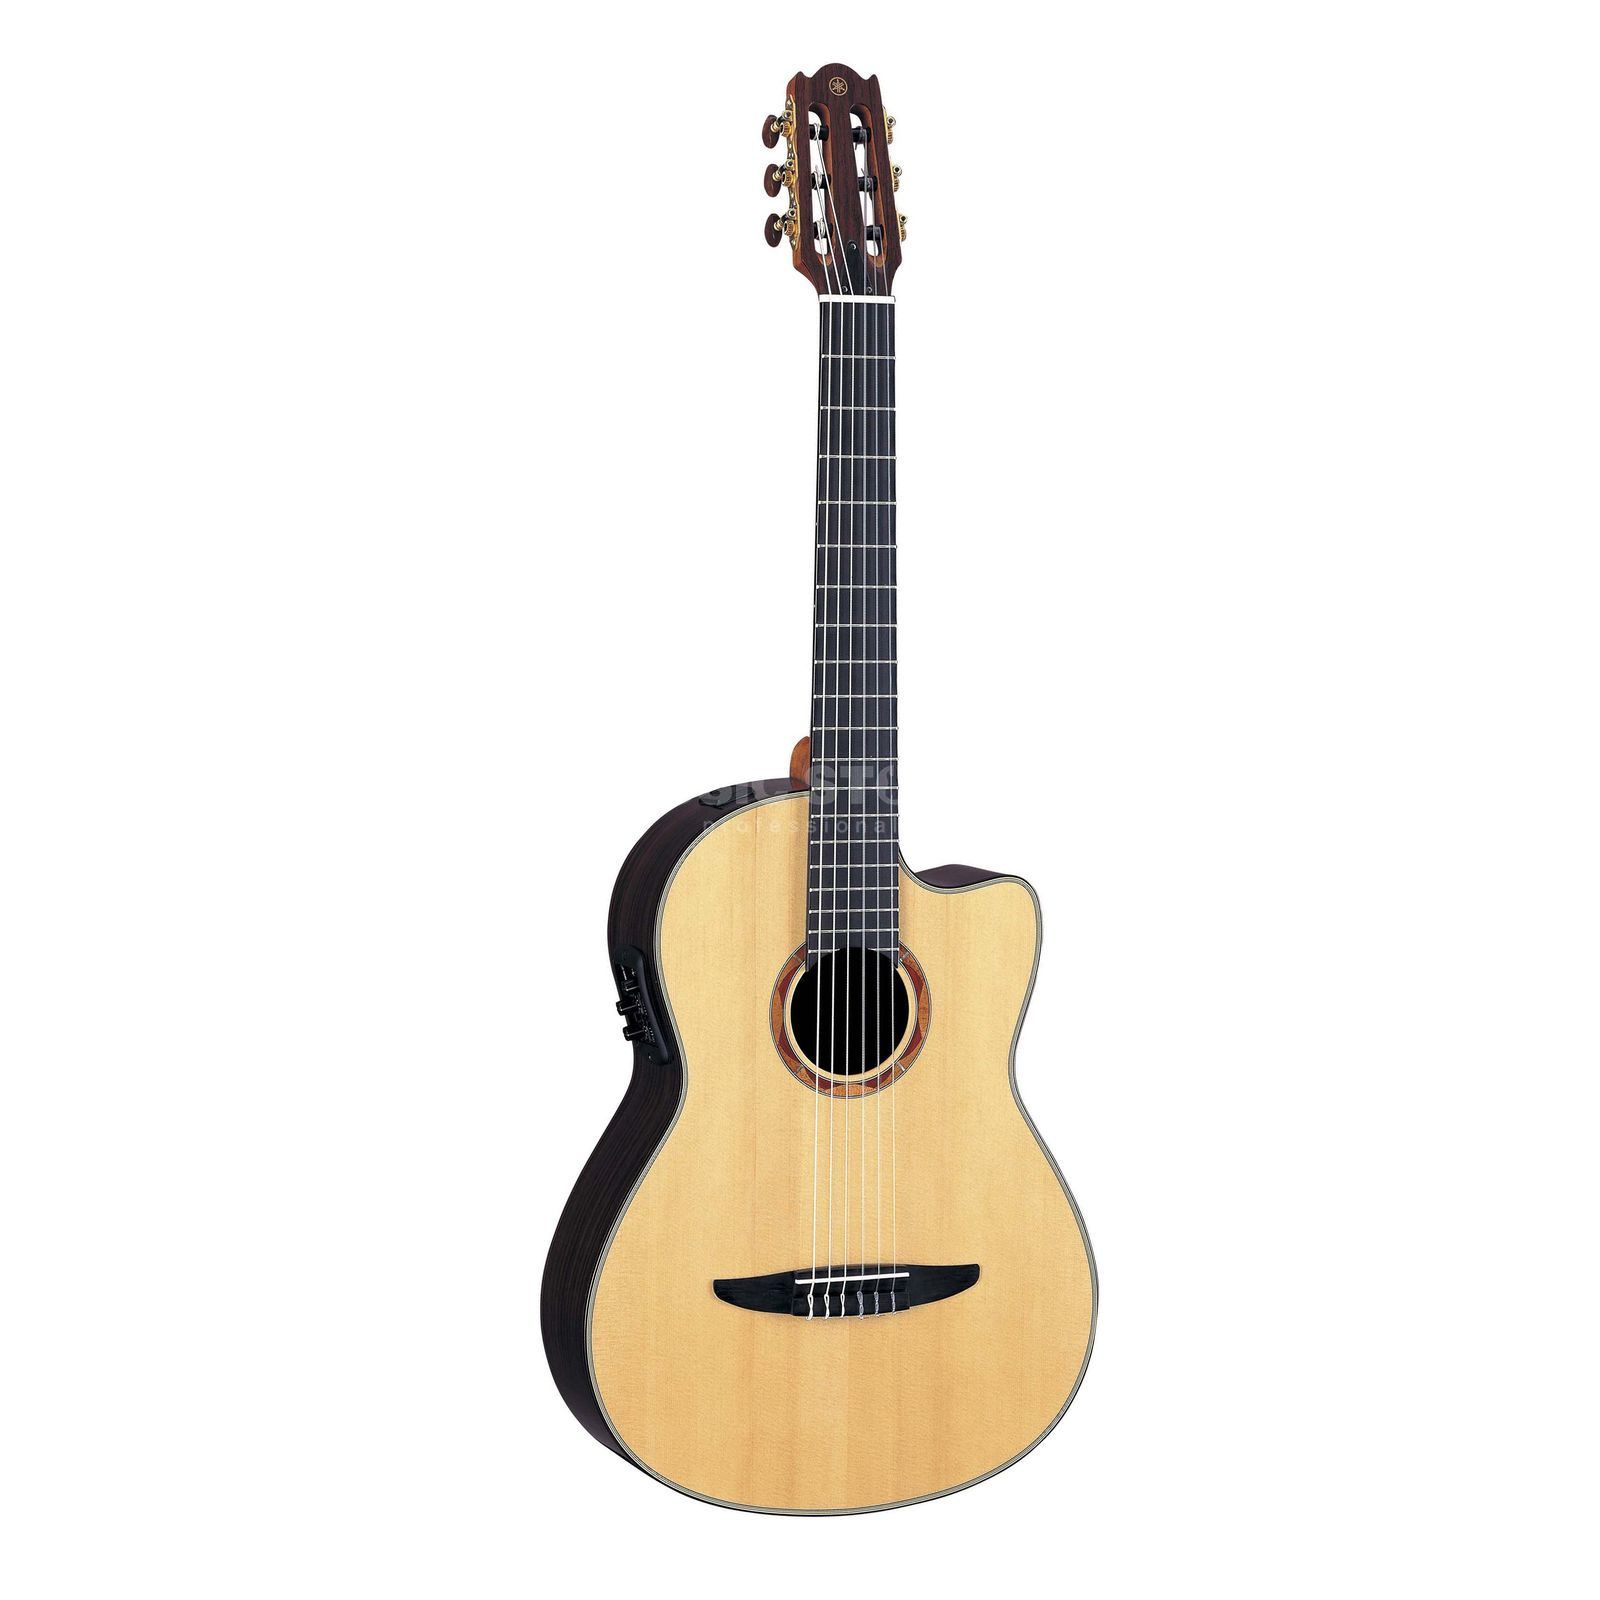 Yamaha NCX1200R Classical Electro Aco ustic Guitar, Natural   Produktbillede